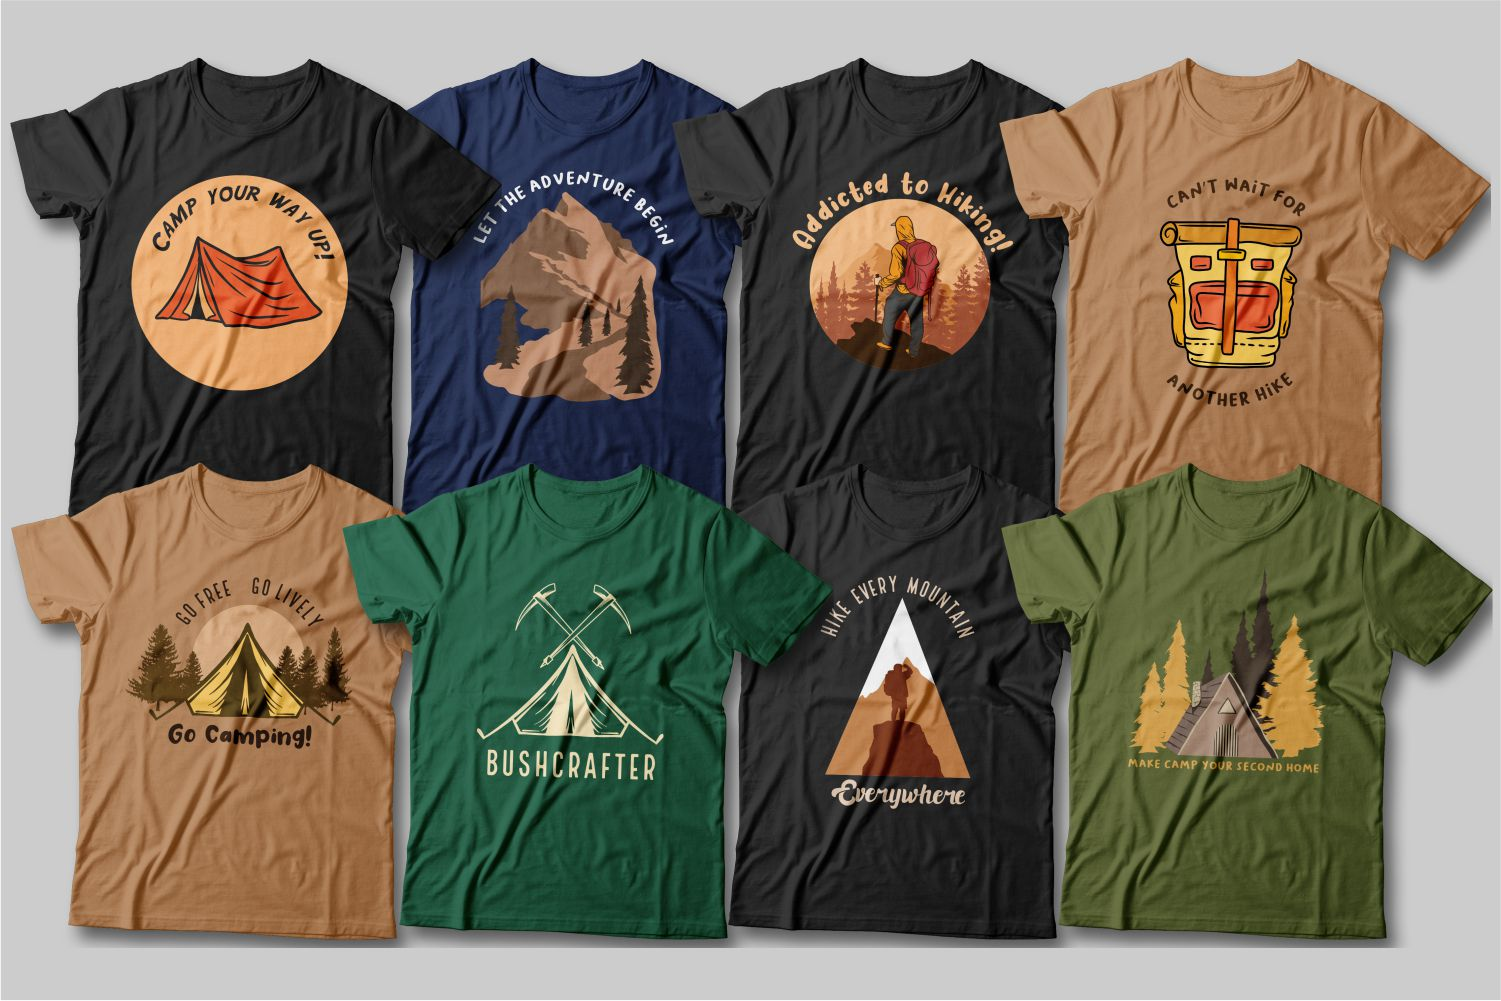 These T-shirts are full of the spirit of adventure and hiking.